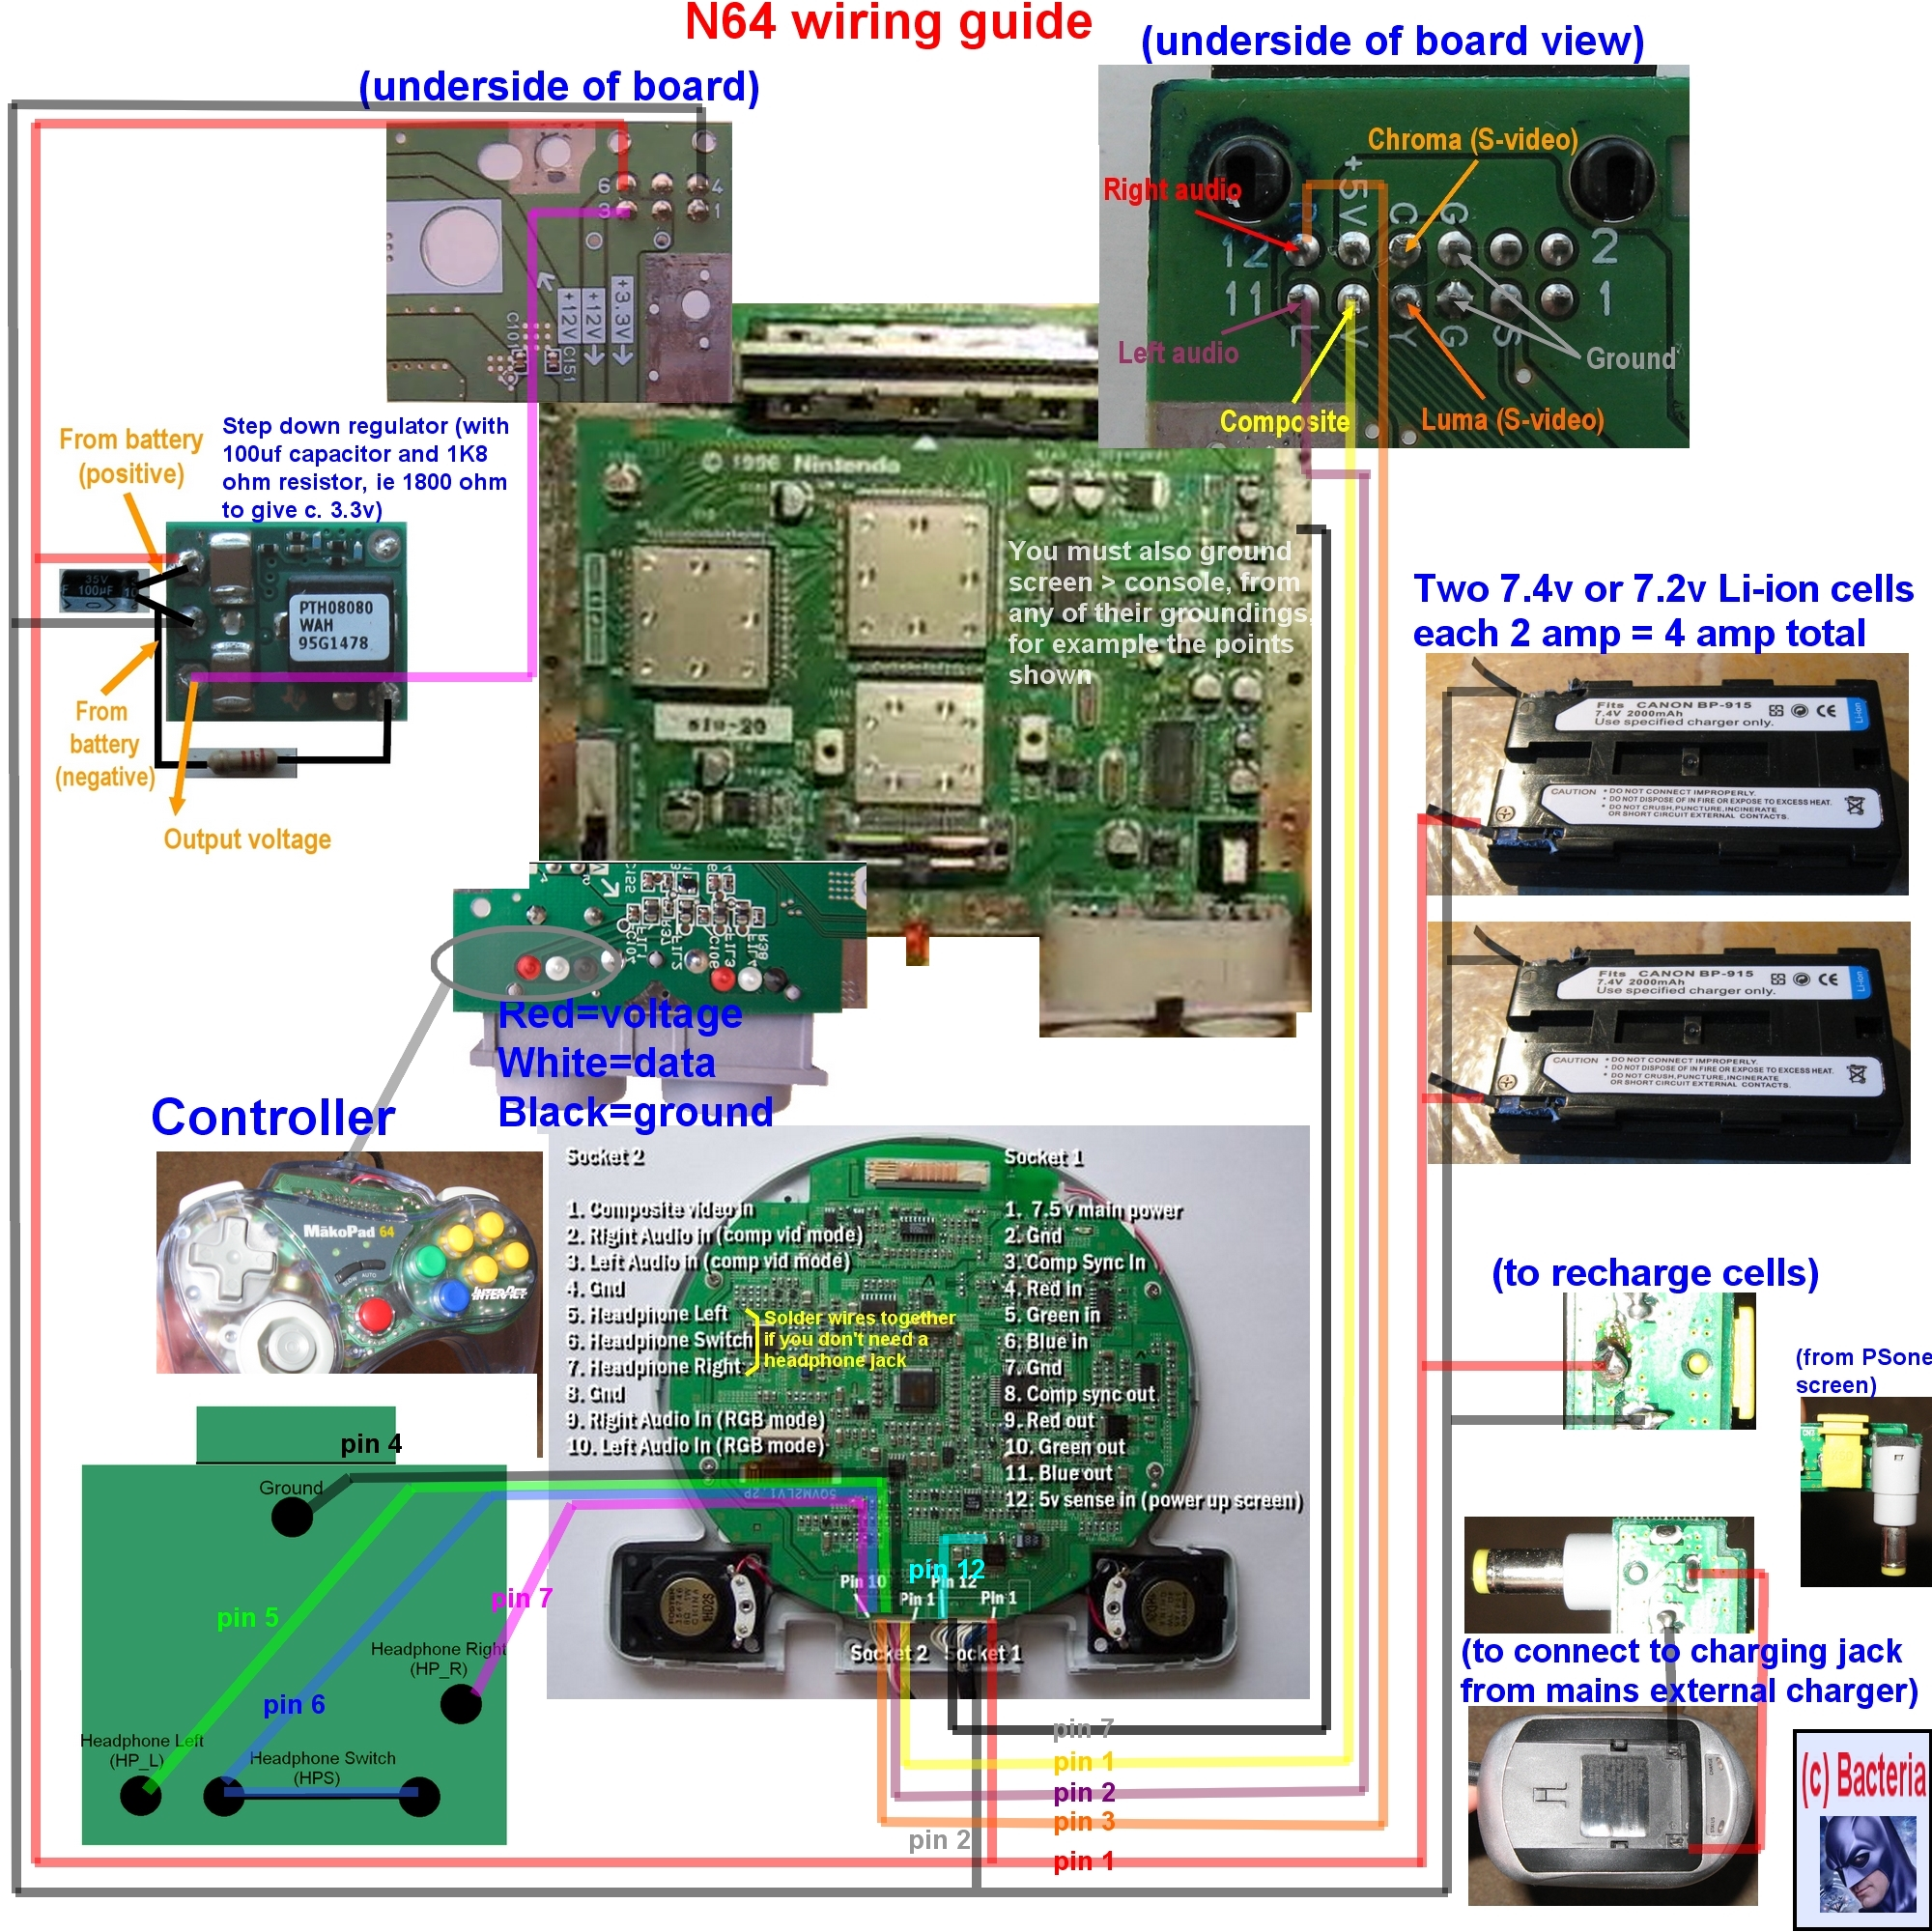 n64 wiring guide1 nintendo n64 gamecube controller wiring diagram at bayanpartner.co